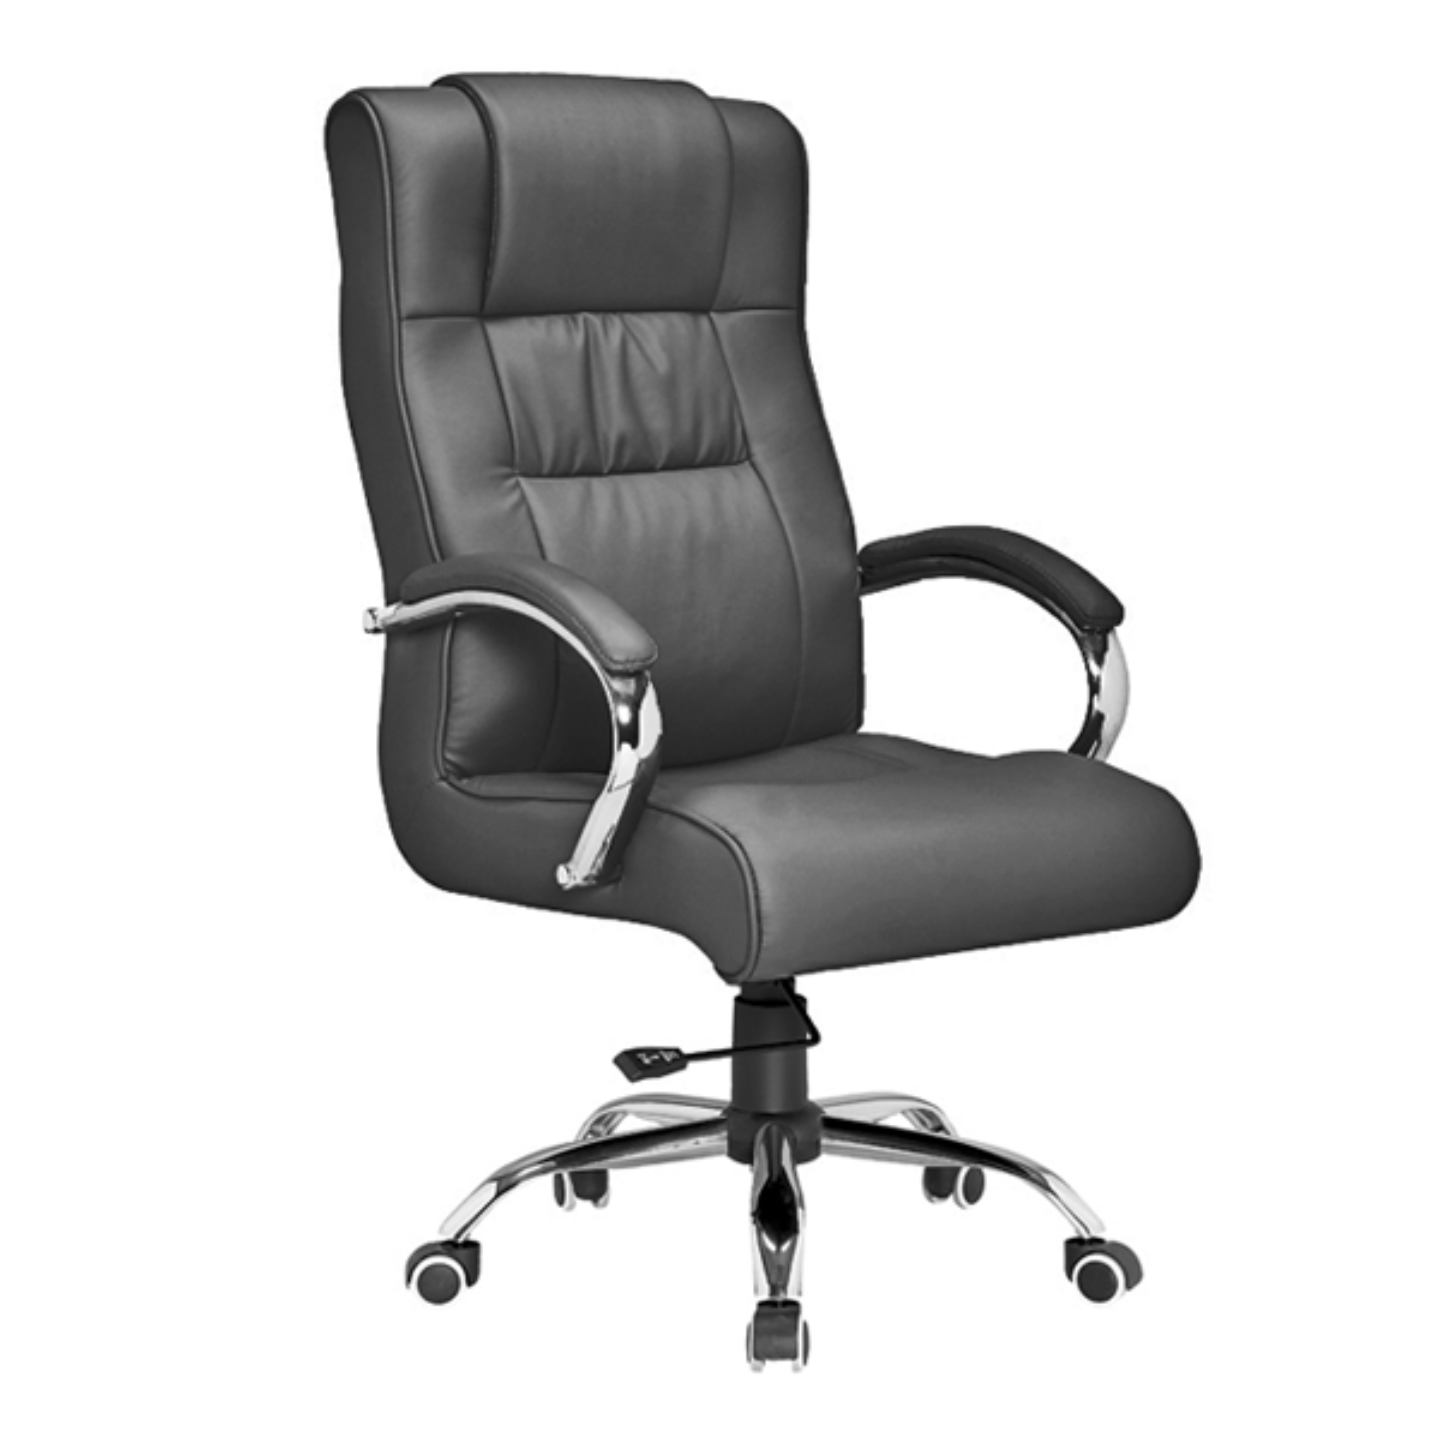 EMERALD Director Chair (Genuine Leather)